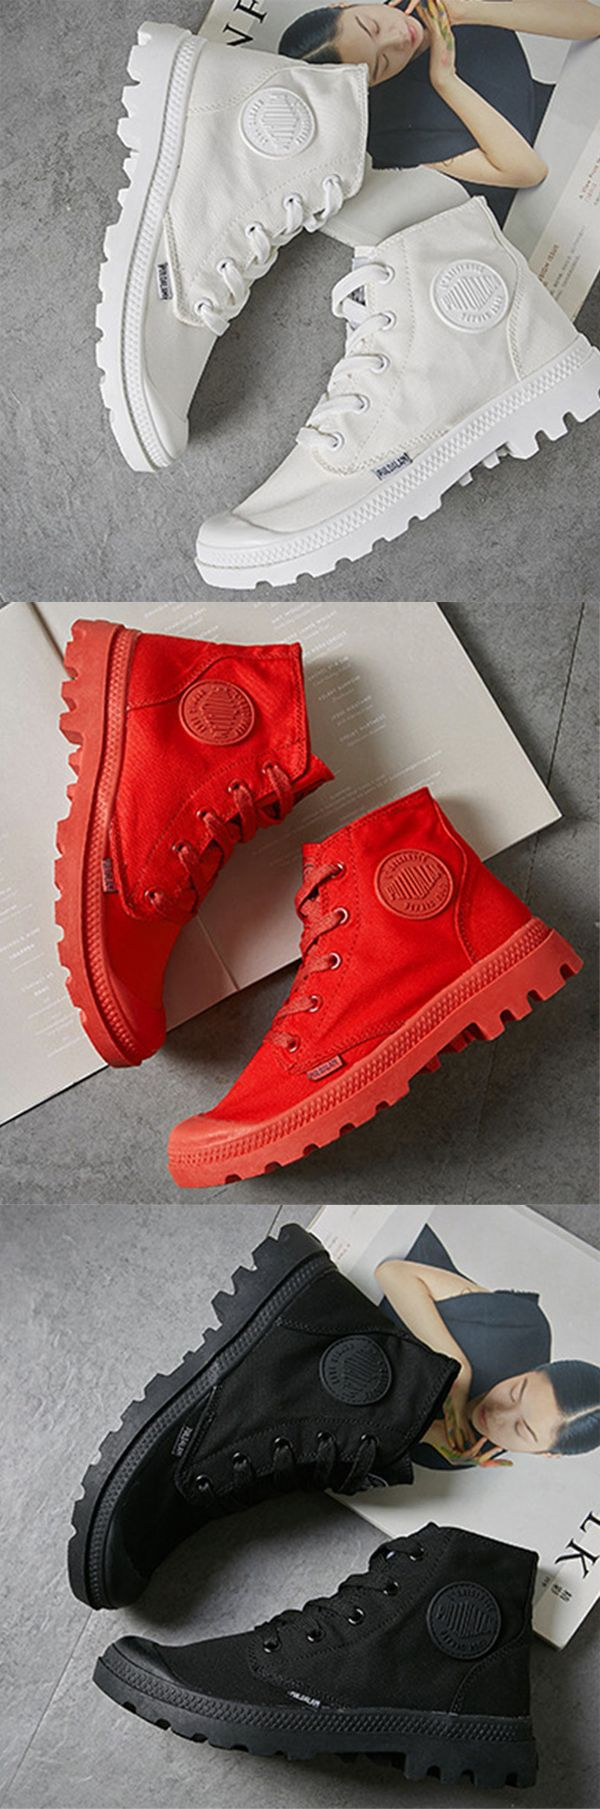 104 Best Casuals Images On Pinterest Shoes Shoe Collection And